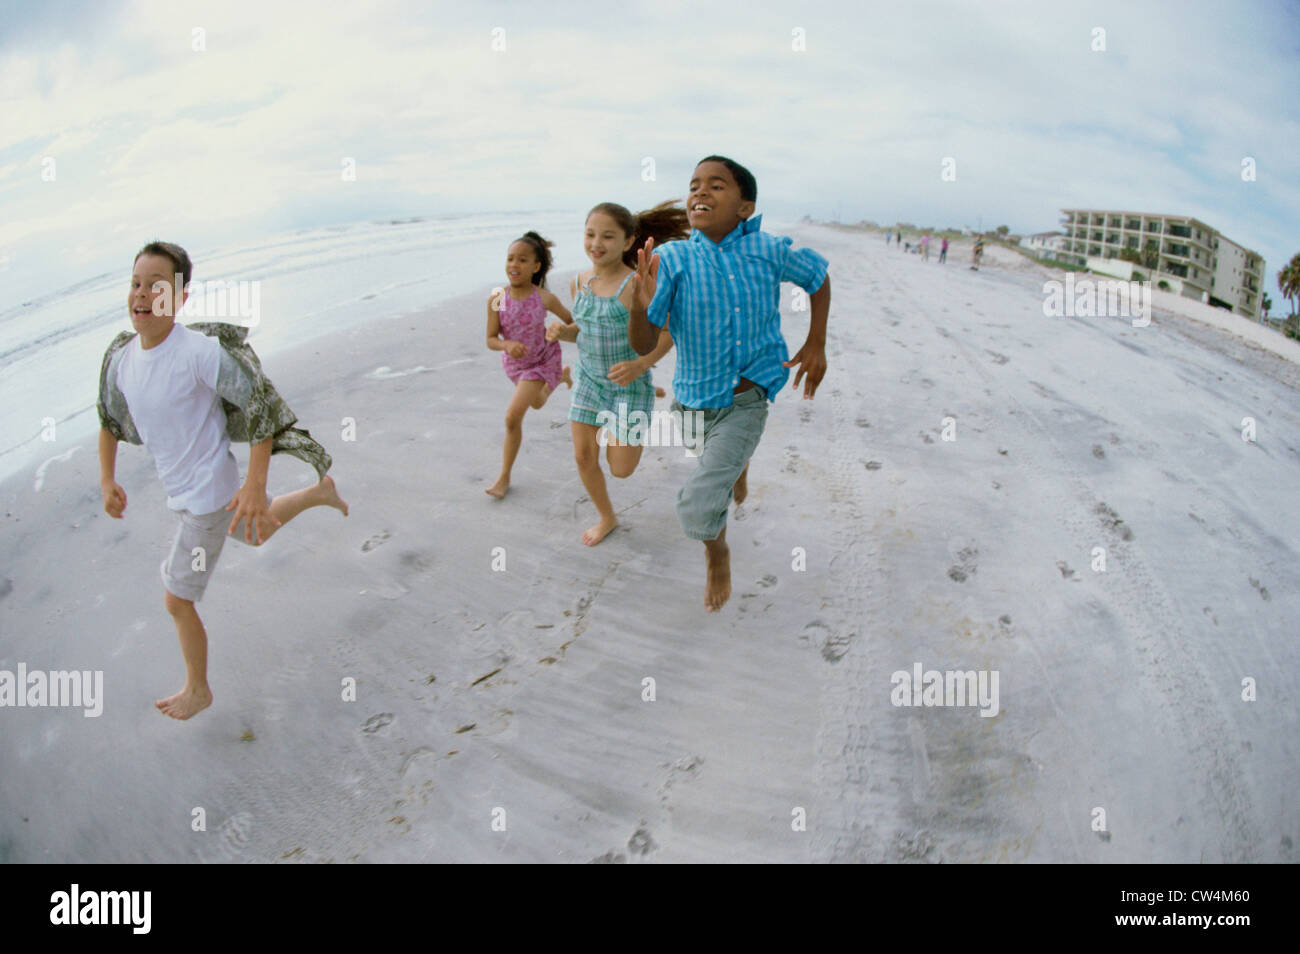 Two Boys And Girls Running On The Beach